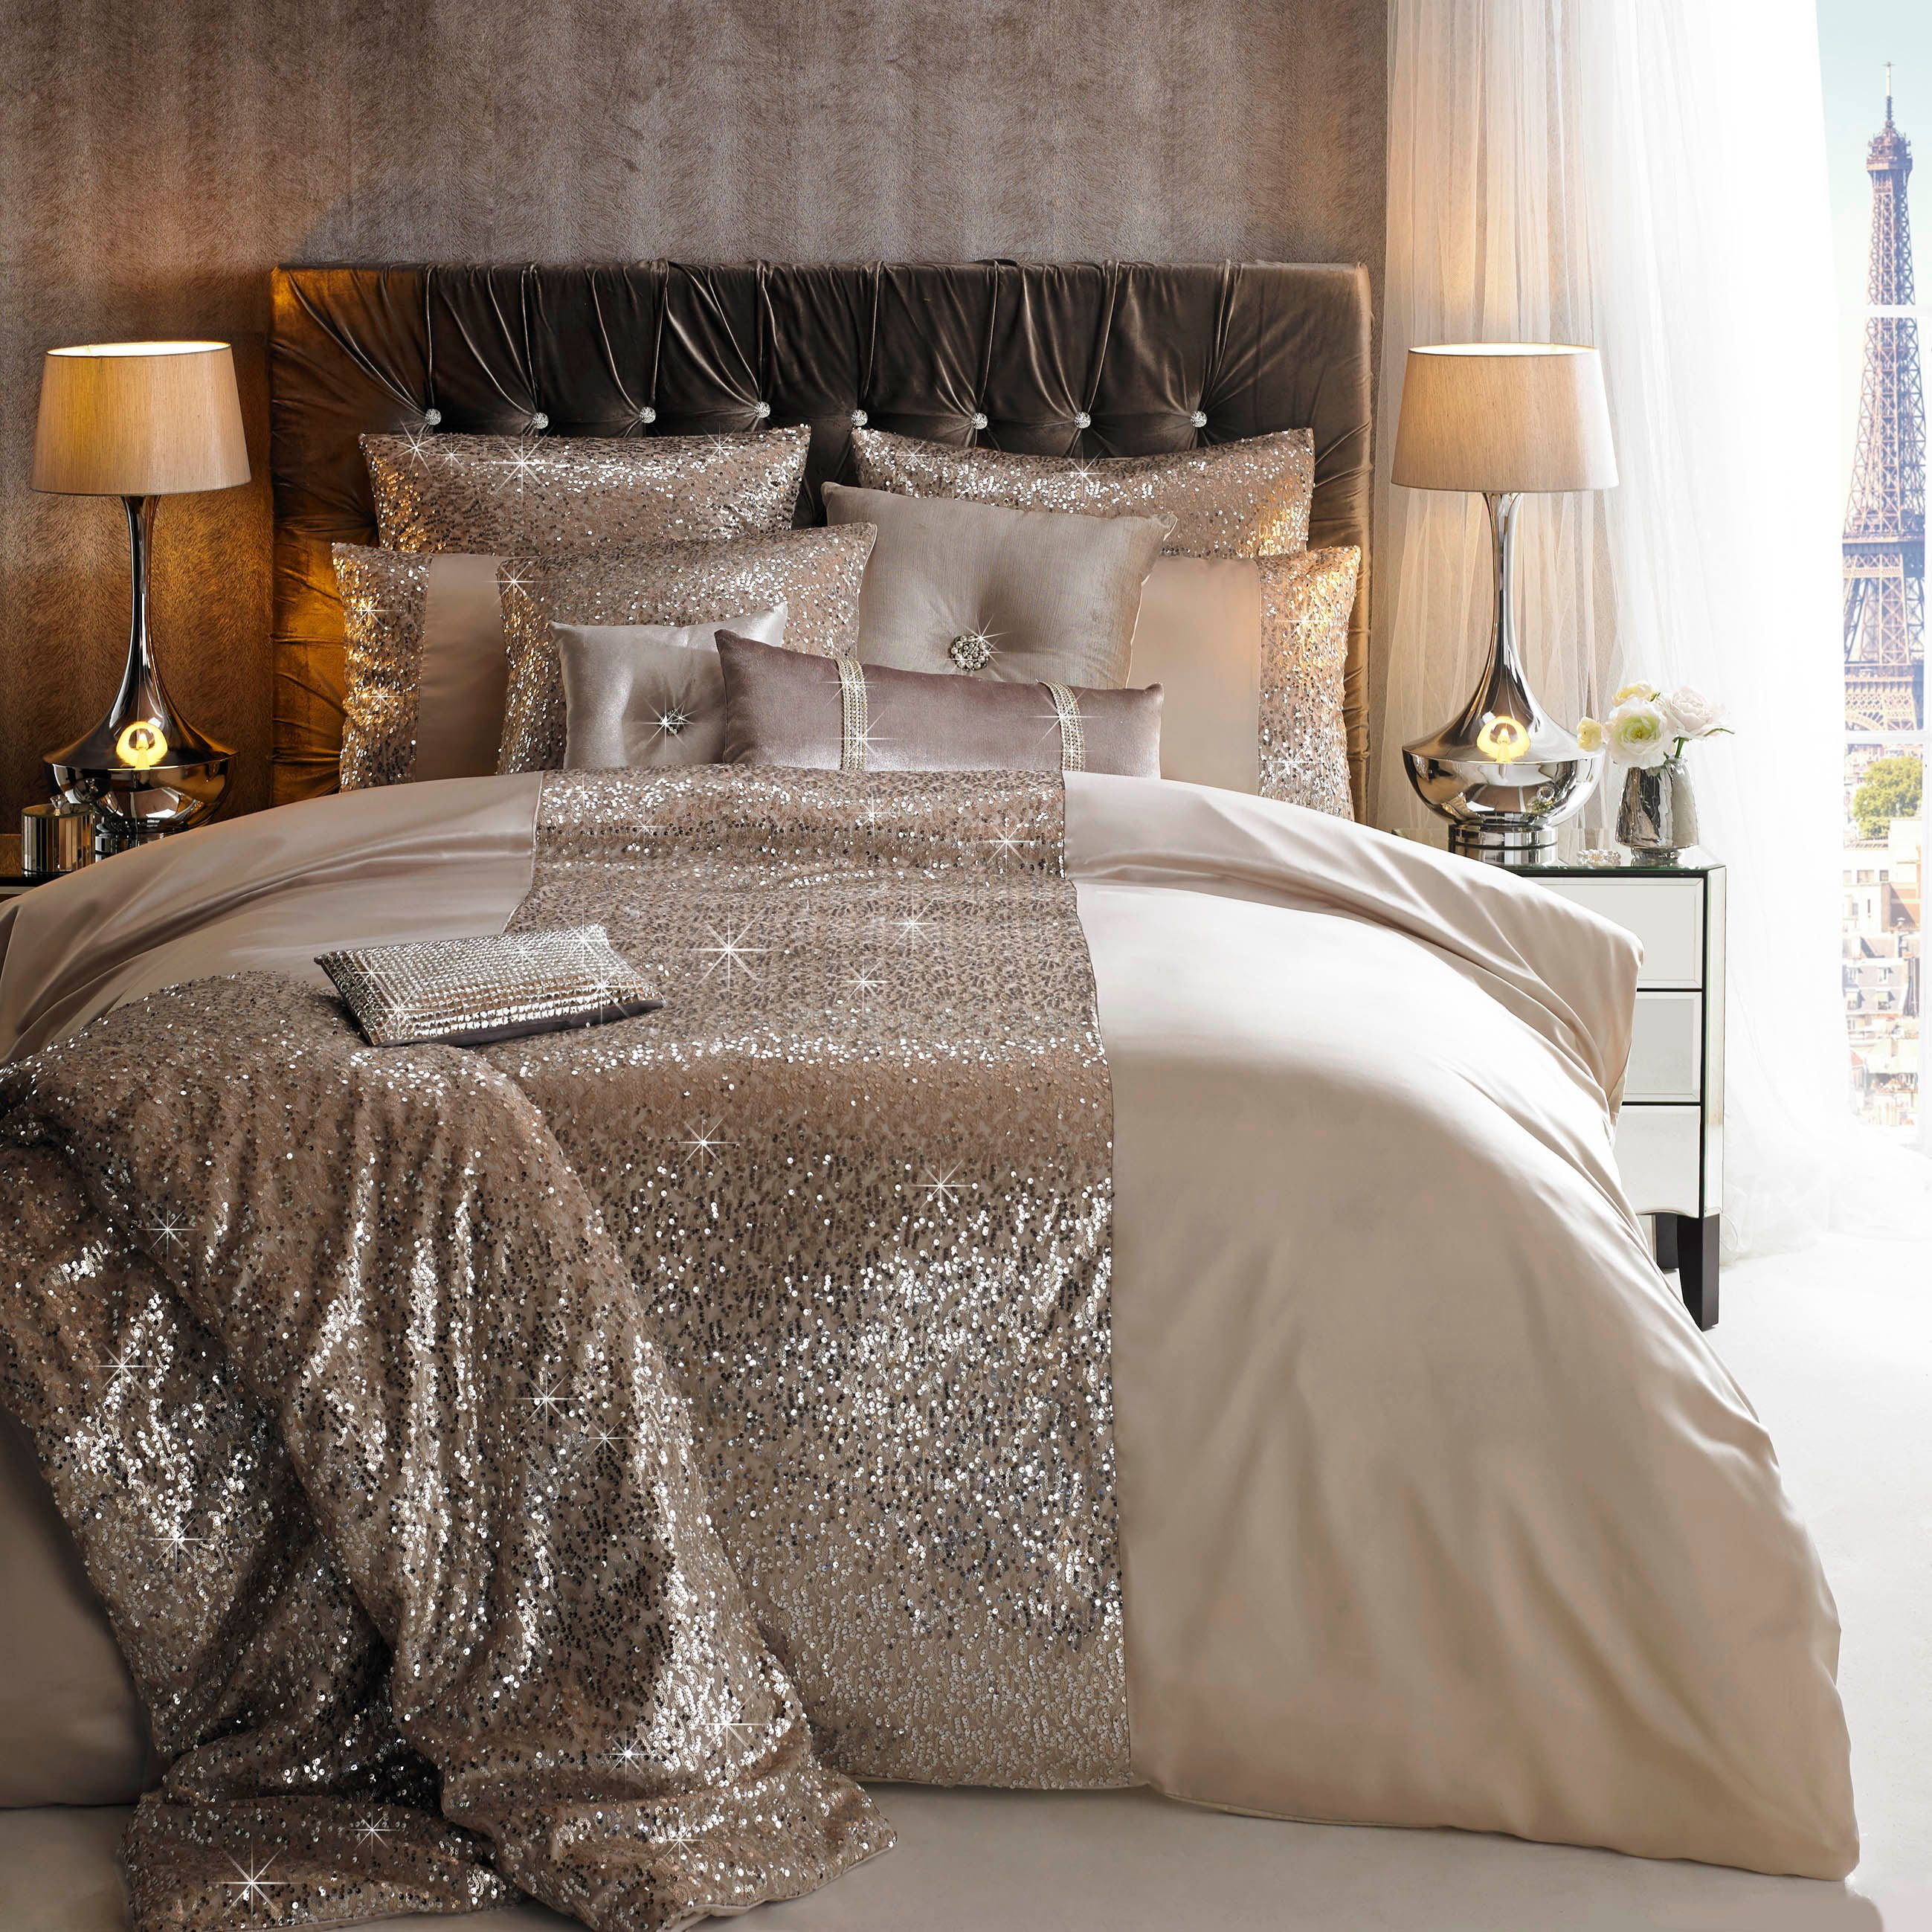 kylie minogue edessa pillowcases